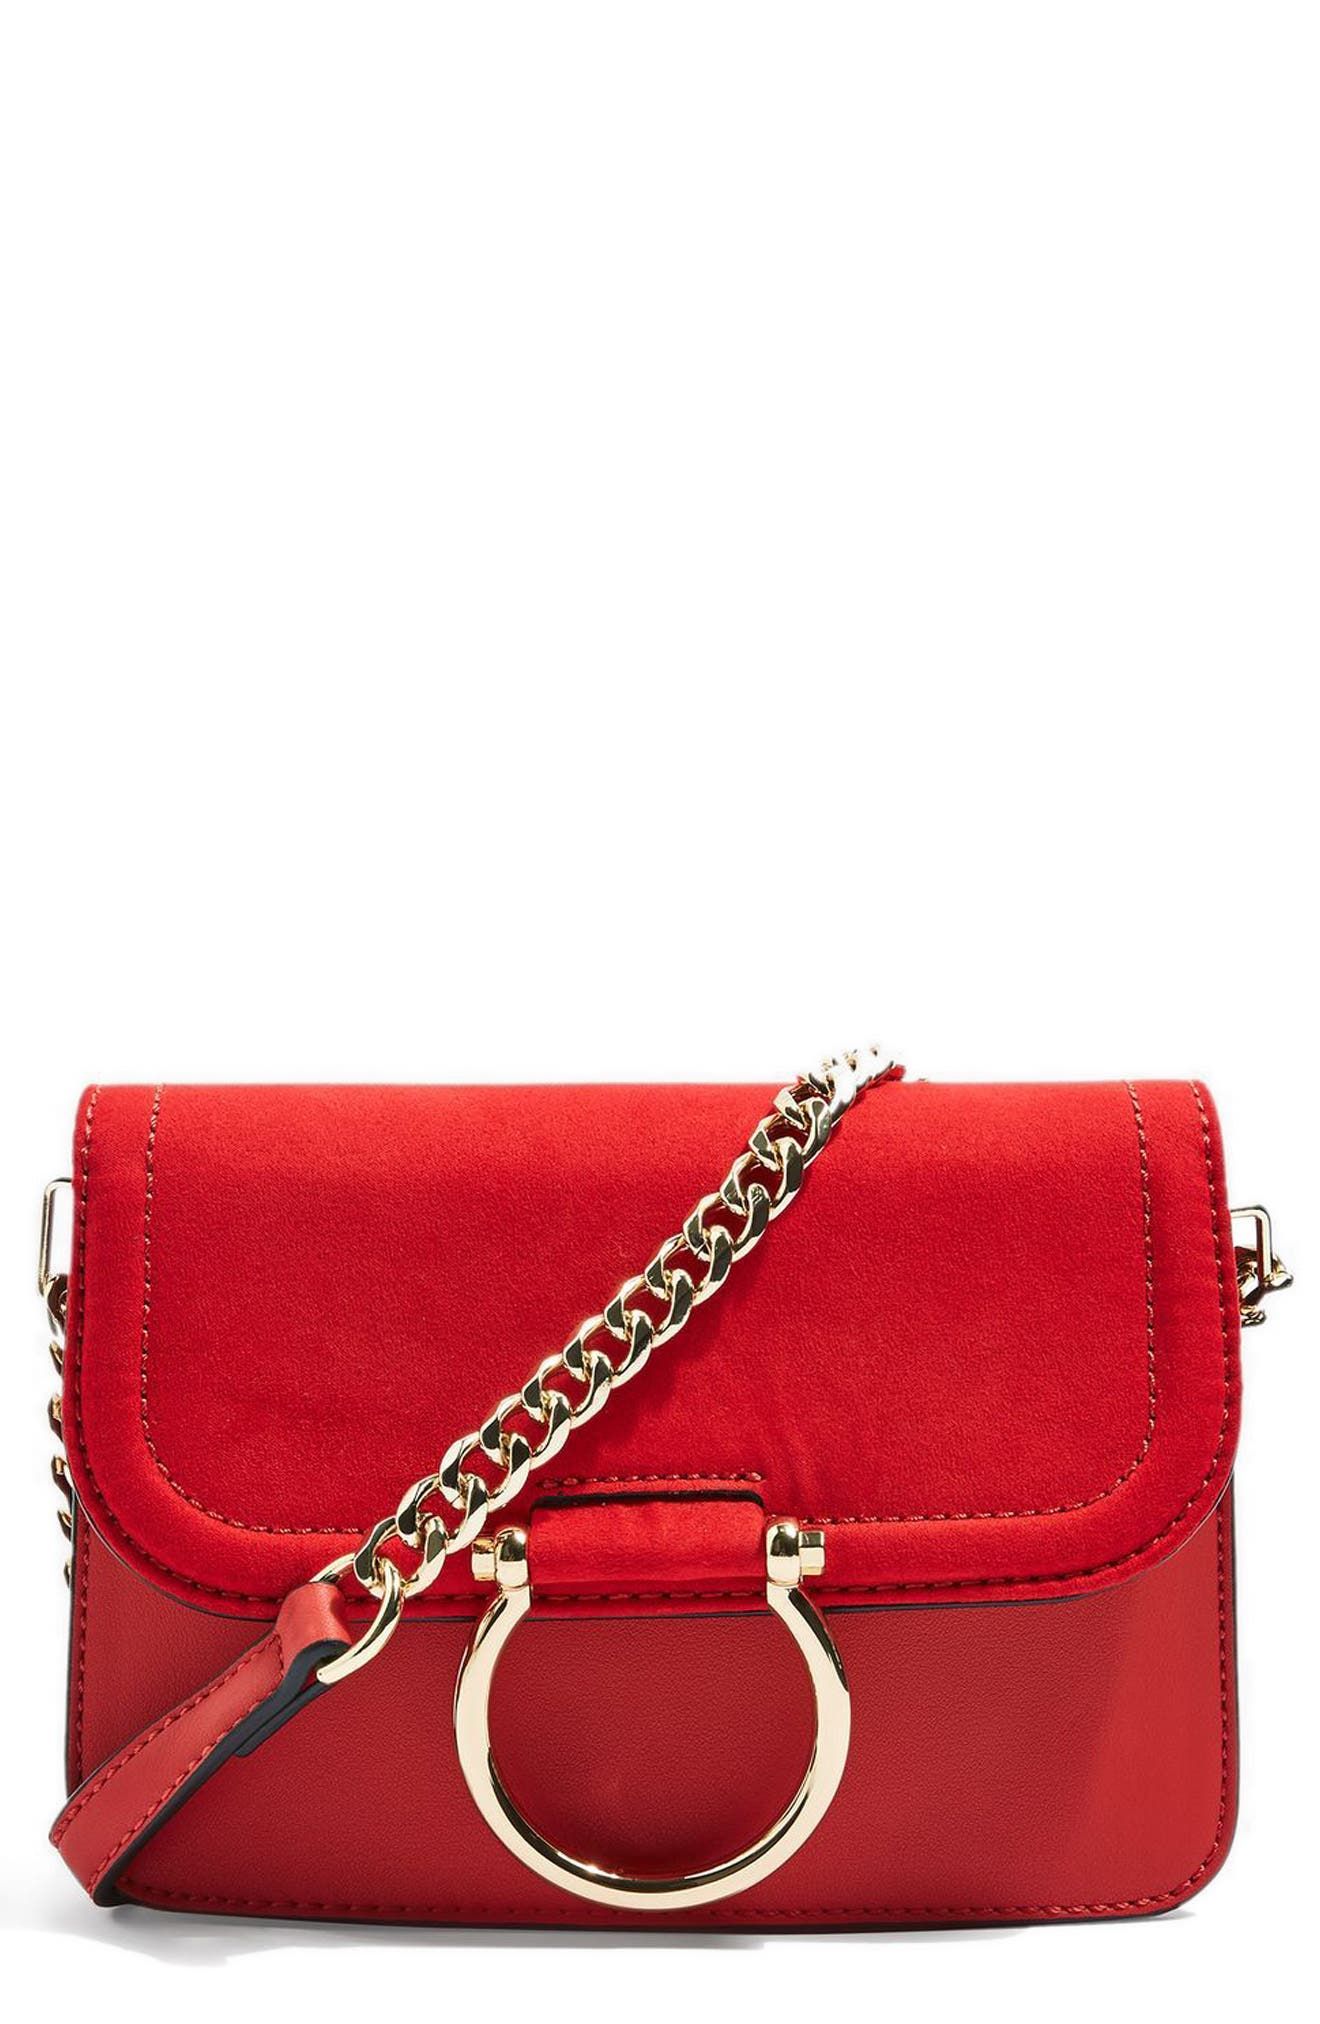 Remy Trophy Faux Leather Crossbody Bag,                             Main thumbnail 1, color,                             600